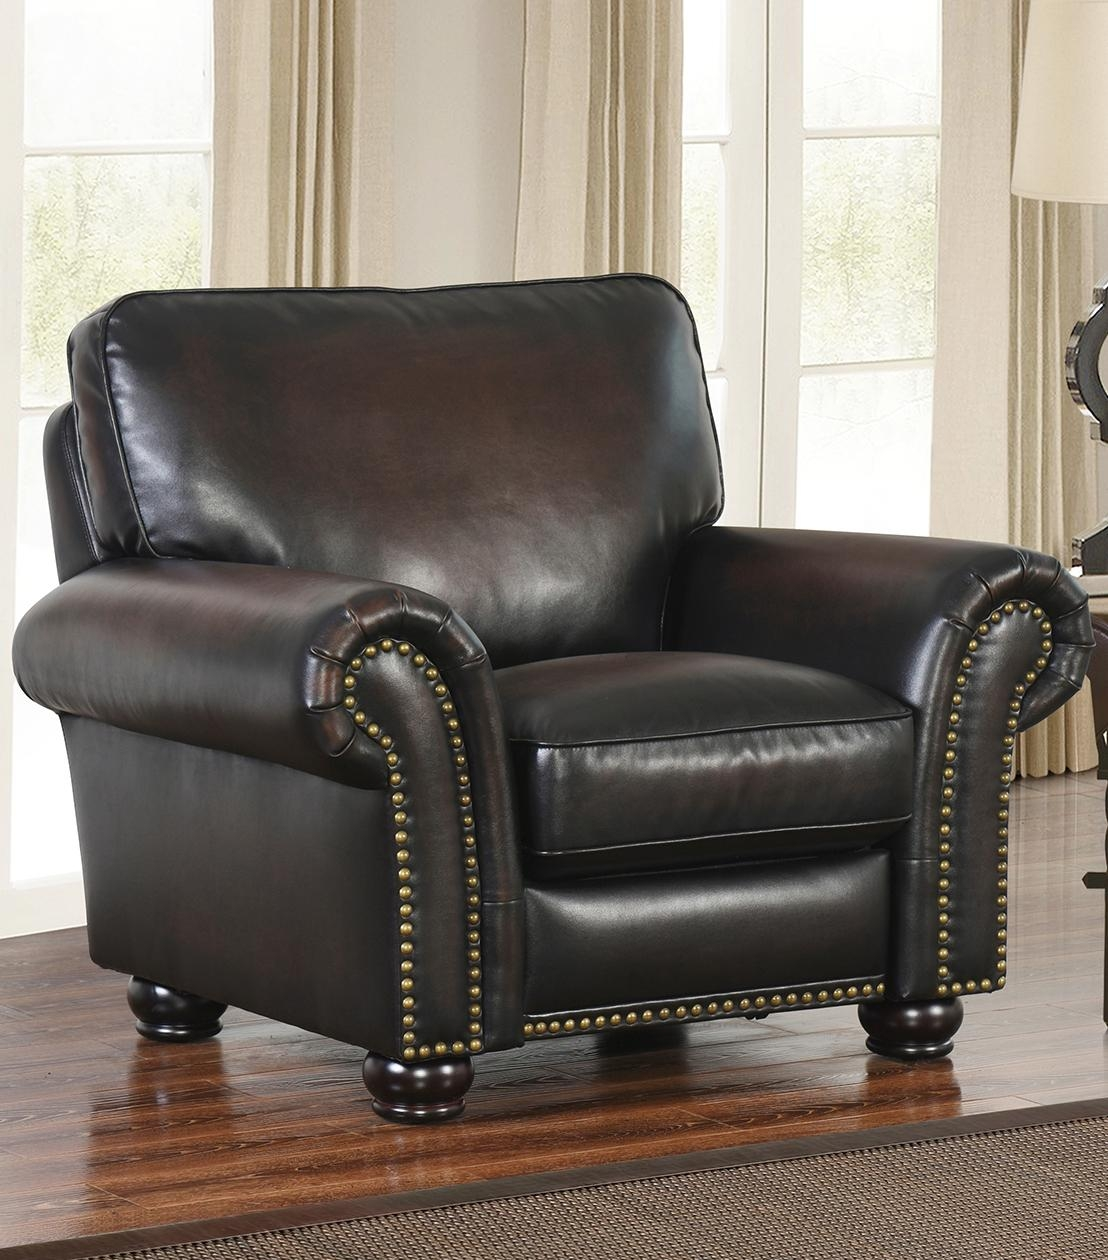 Recliners : Braxton Leather Pushback Recliner Inside Abbyson Recliners (View 4 of 20)